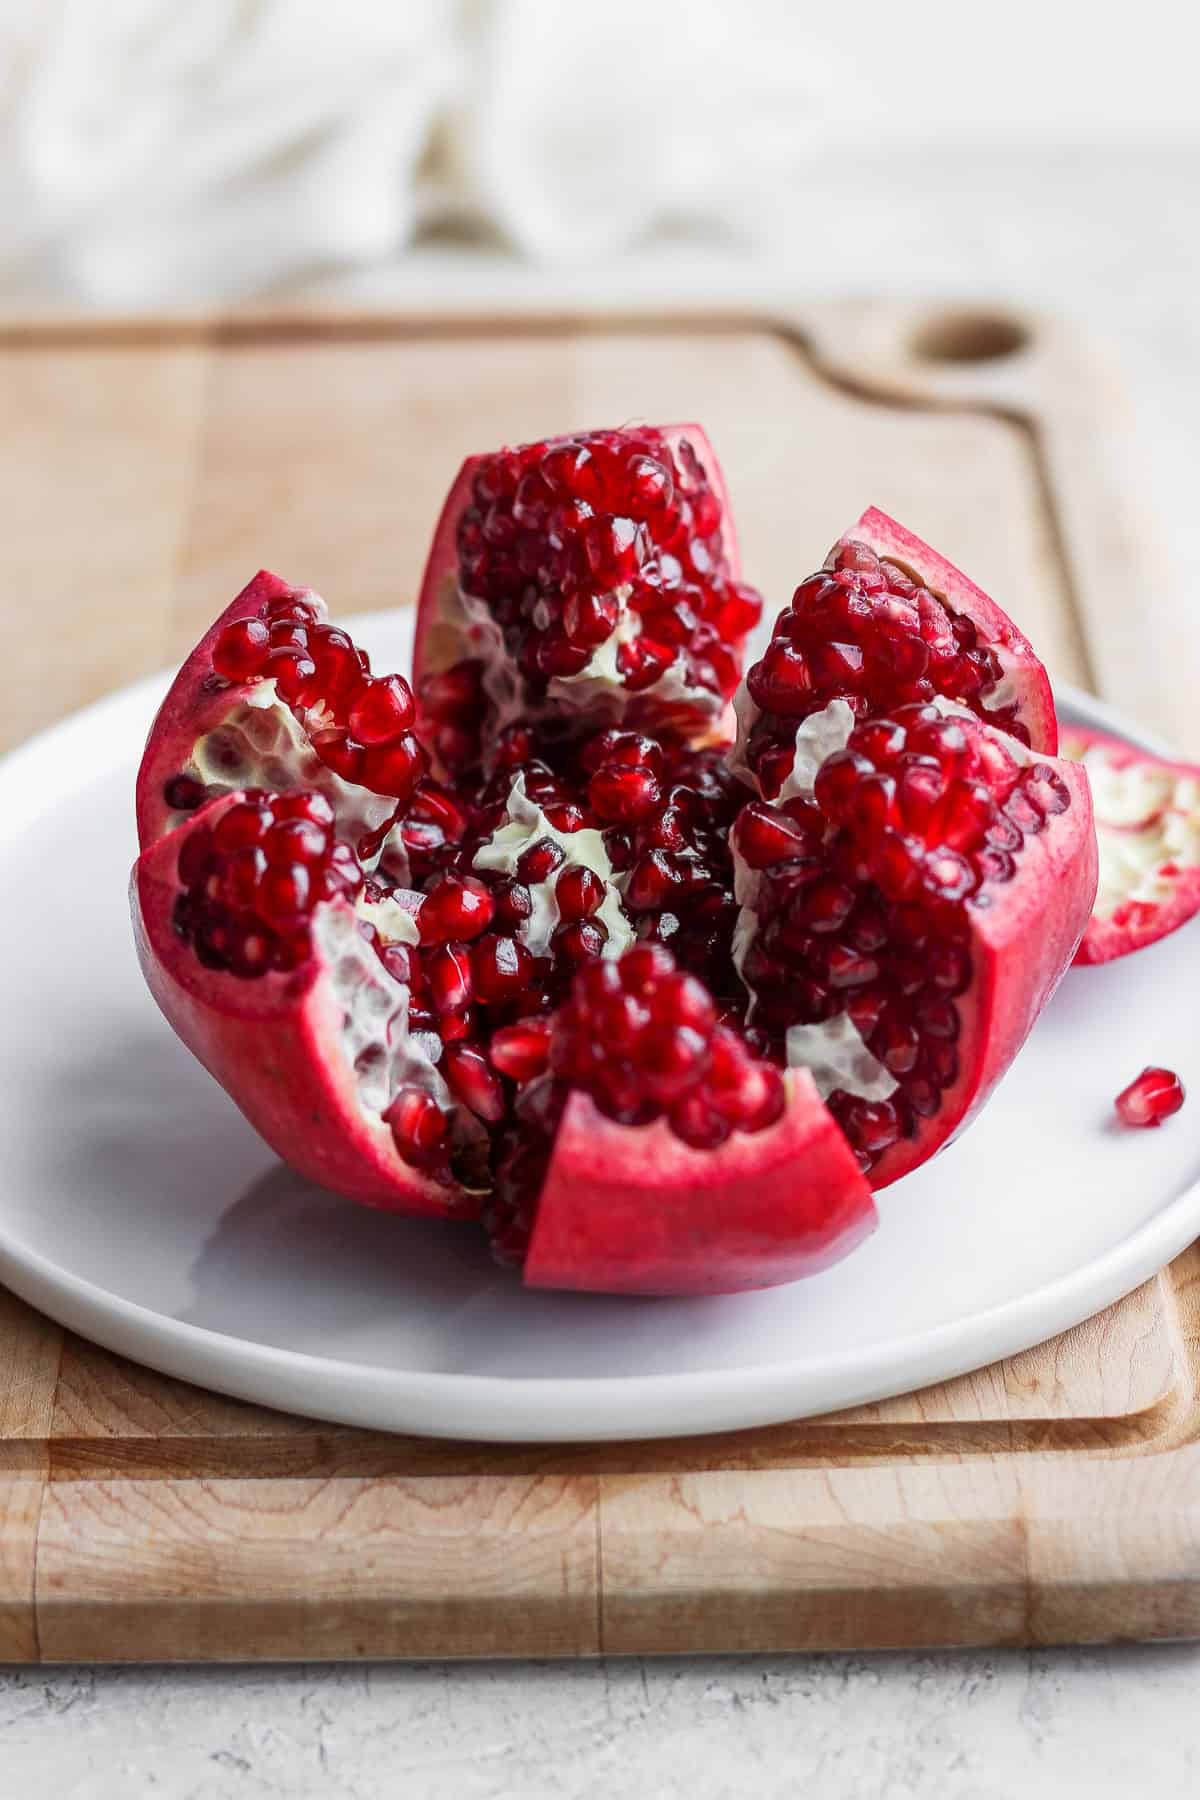 Pomegranate cut into segments on white dish